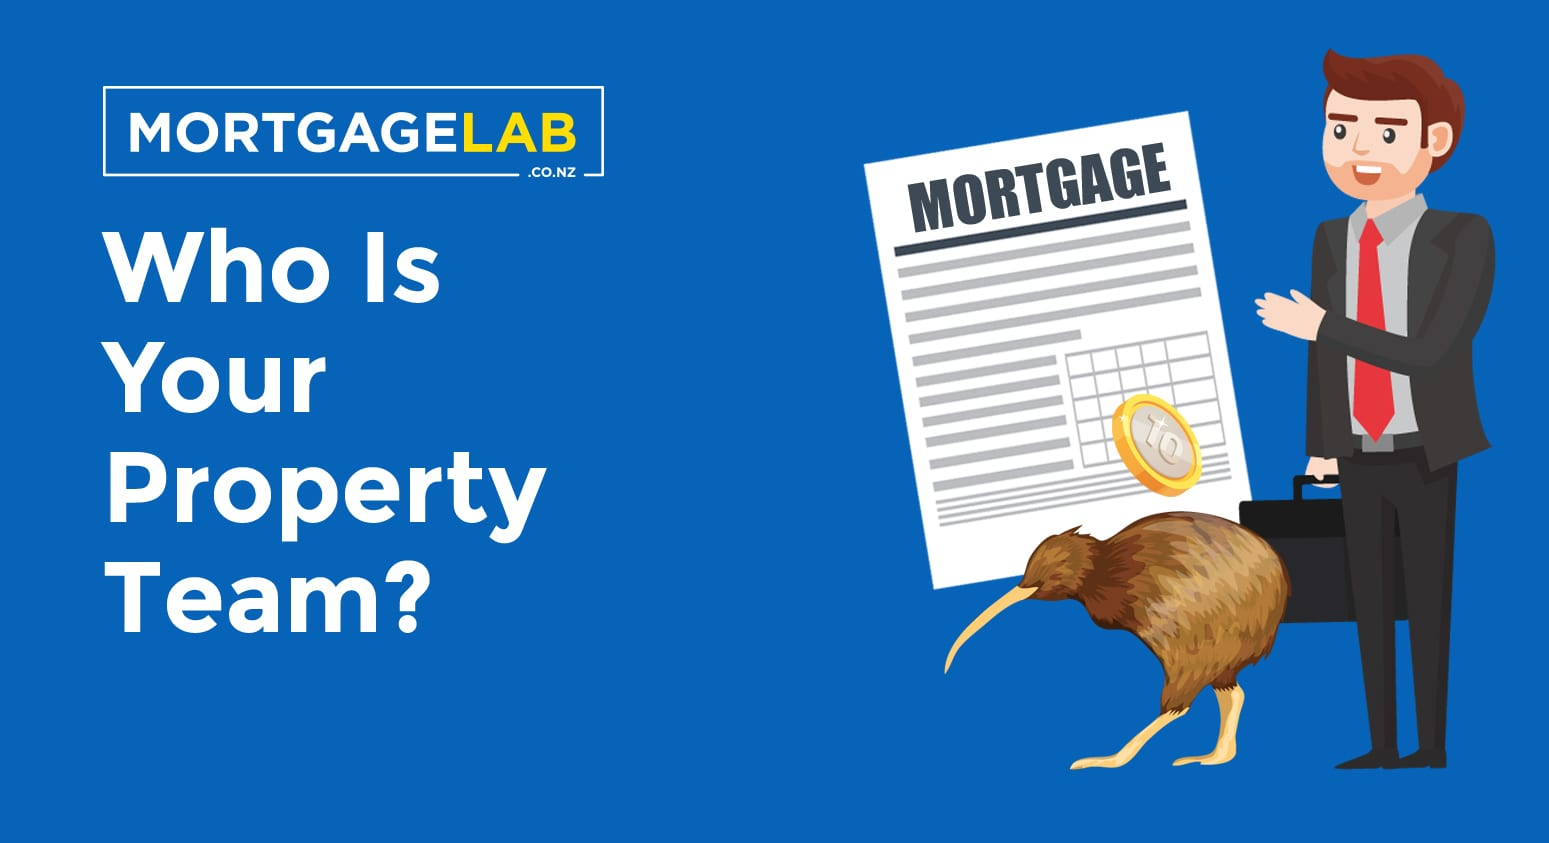 Who is your property team?